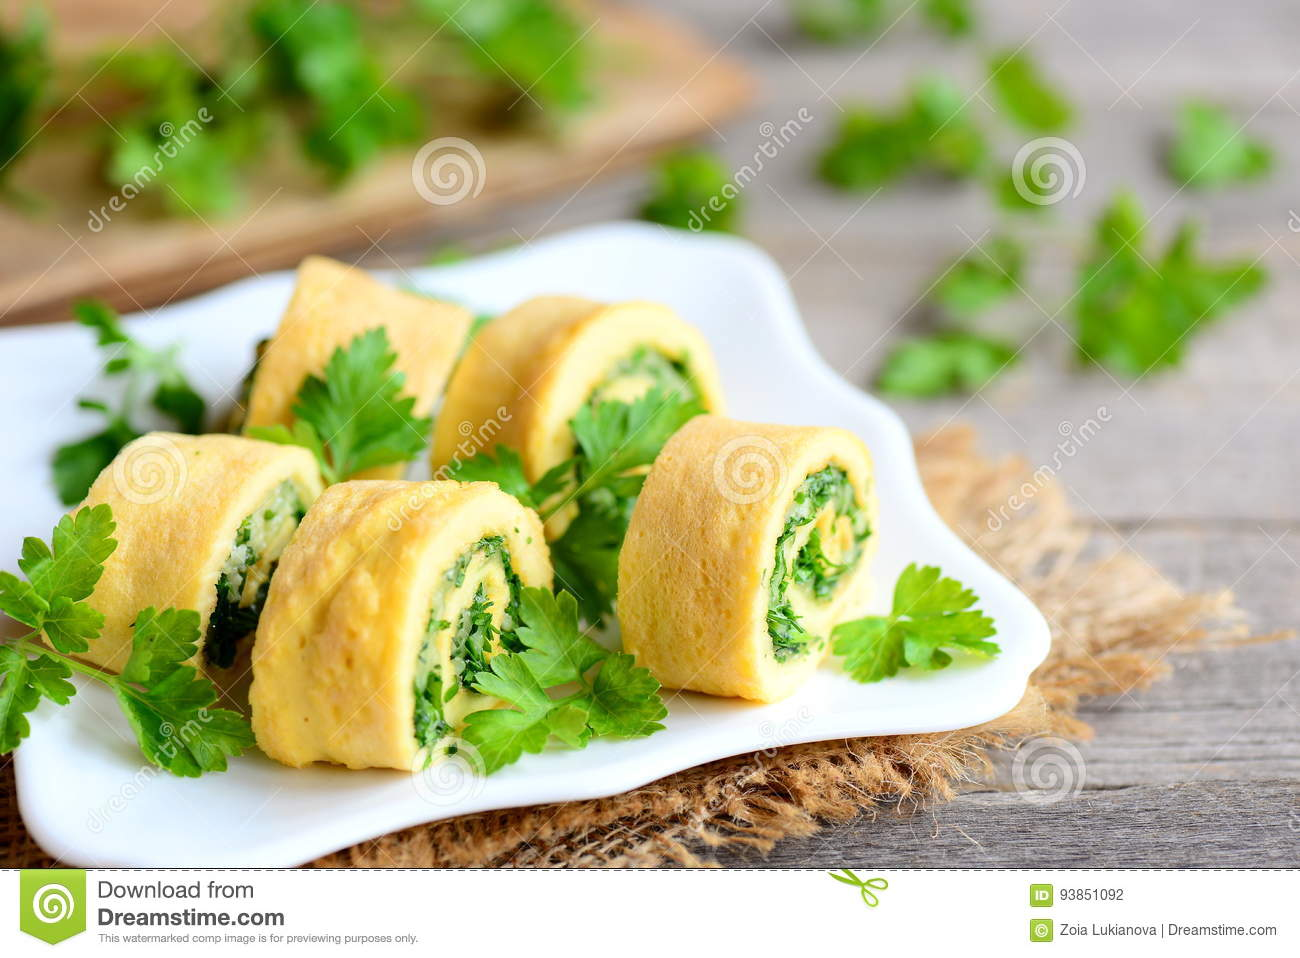 Cheese and parsley omelette rolls on a white plate. Home fried omelette rolls with grated cheese and finely chopped parsley